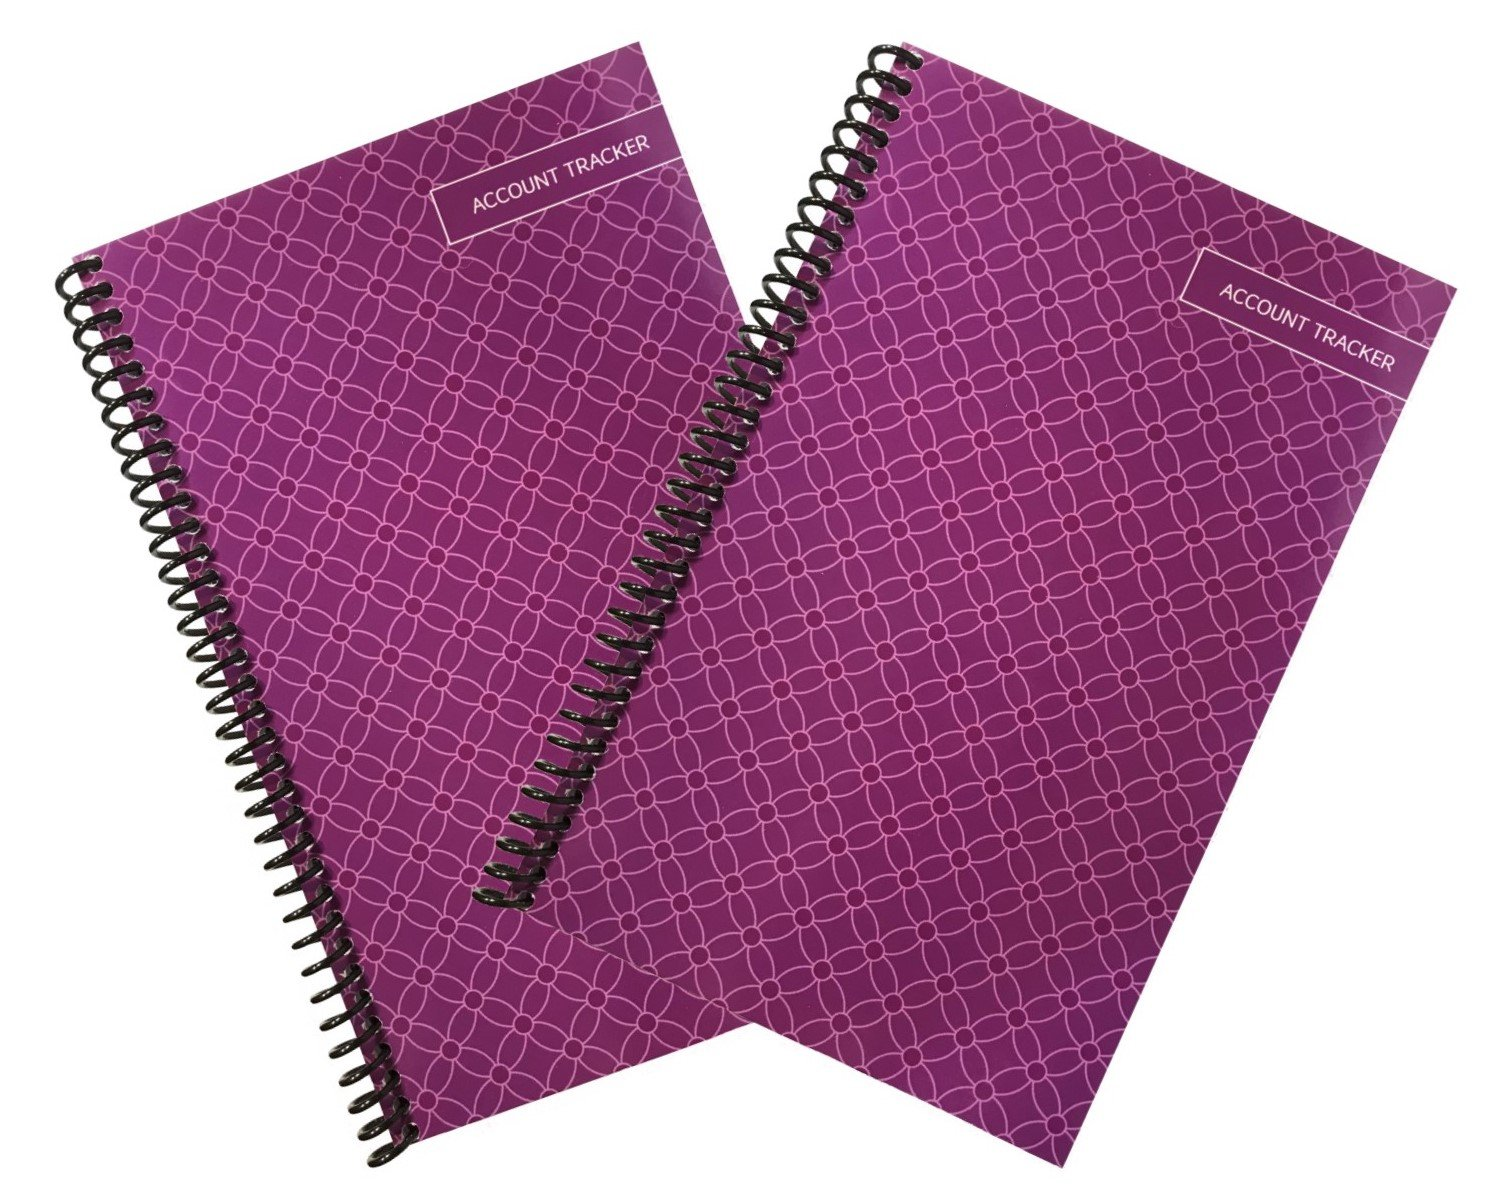 Superior Check and Debit Card Register - Simple Account Tracker - Purple - 2-Pack by The Superior Register (Image #1)